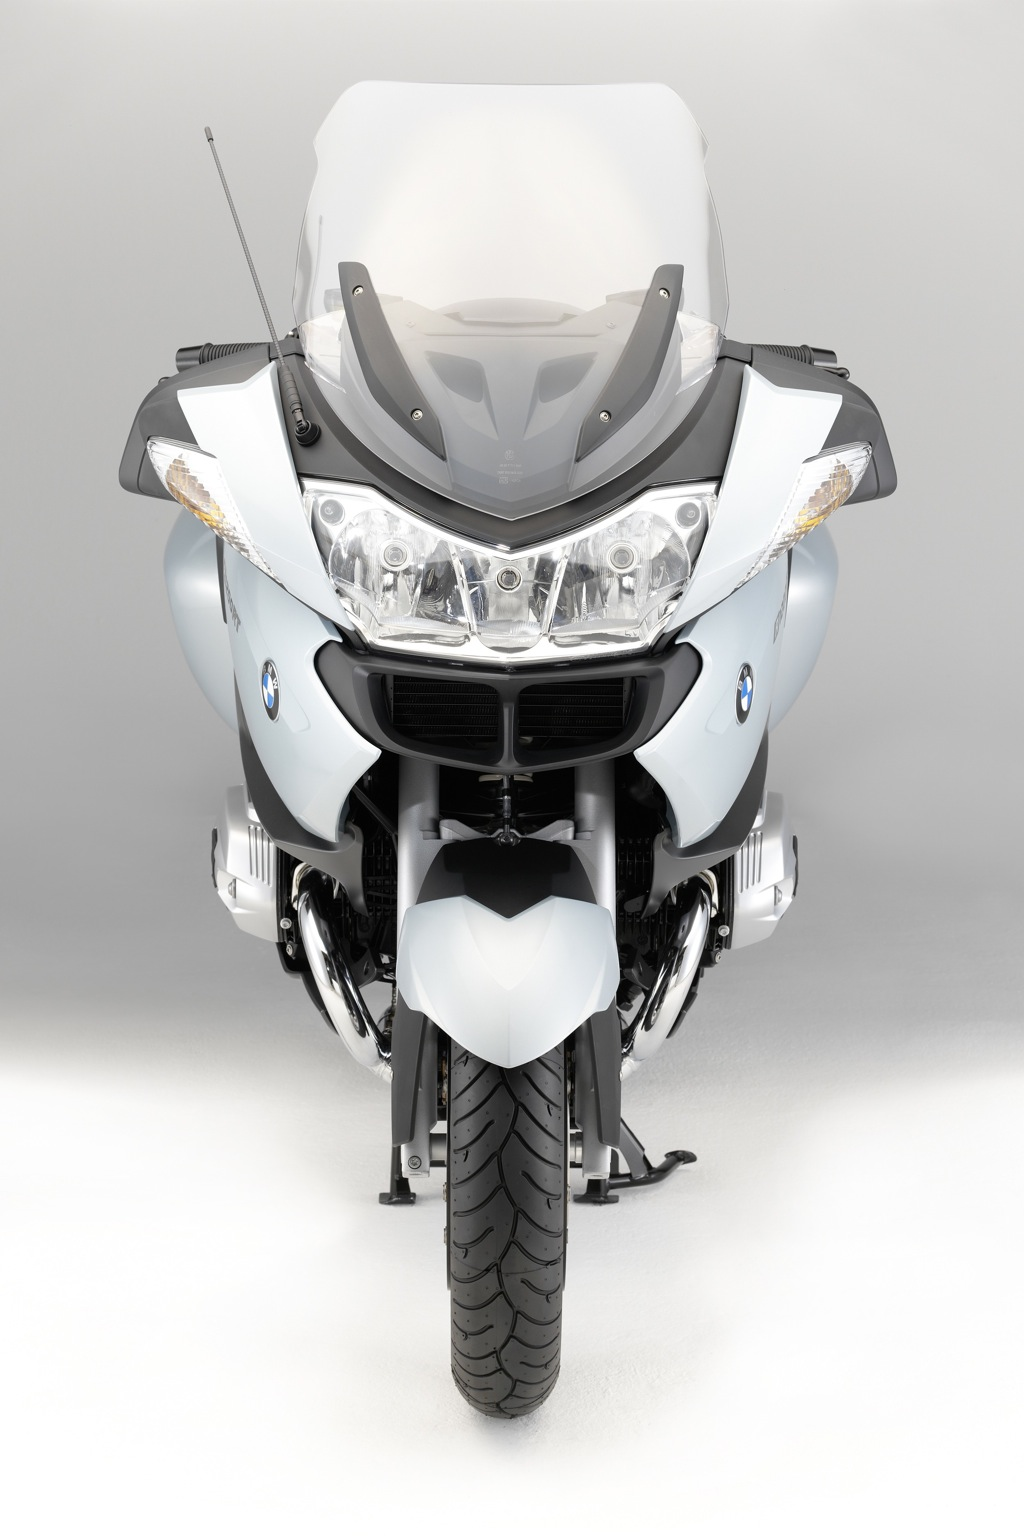 German motorcycle manufacturer BMW had just released full details and  photos on the updated versions of its best-selling tourer, the R 1200 RT,  ...